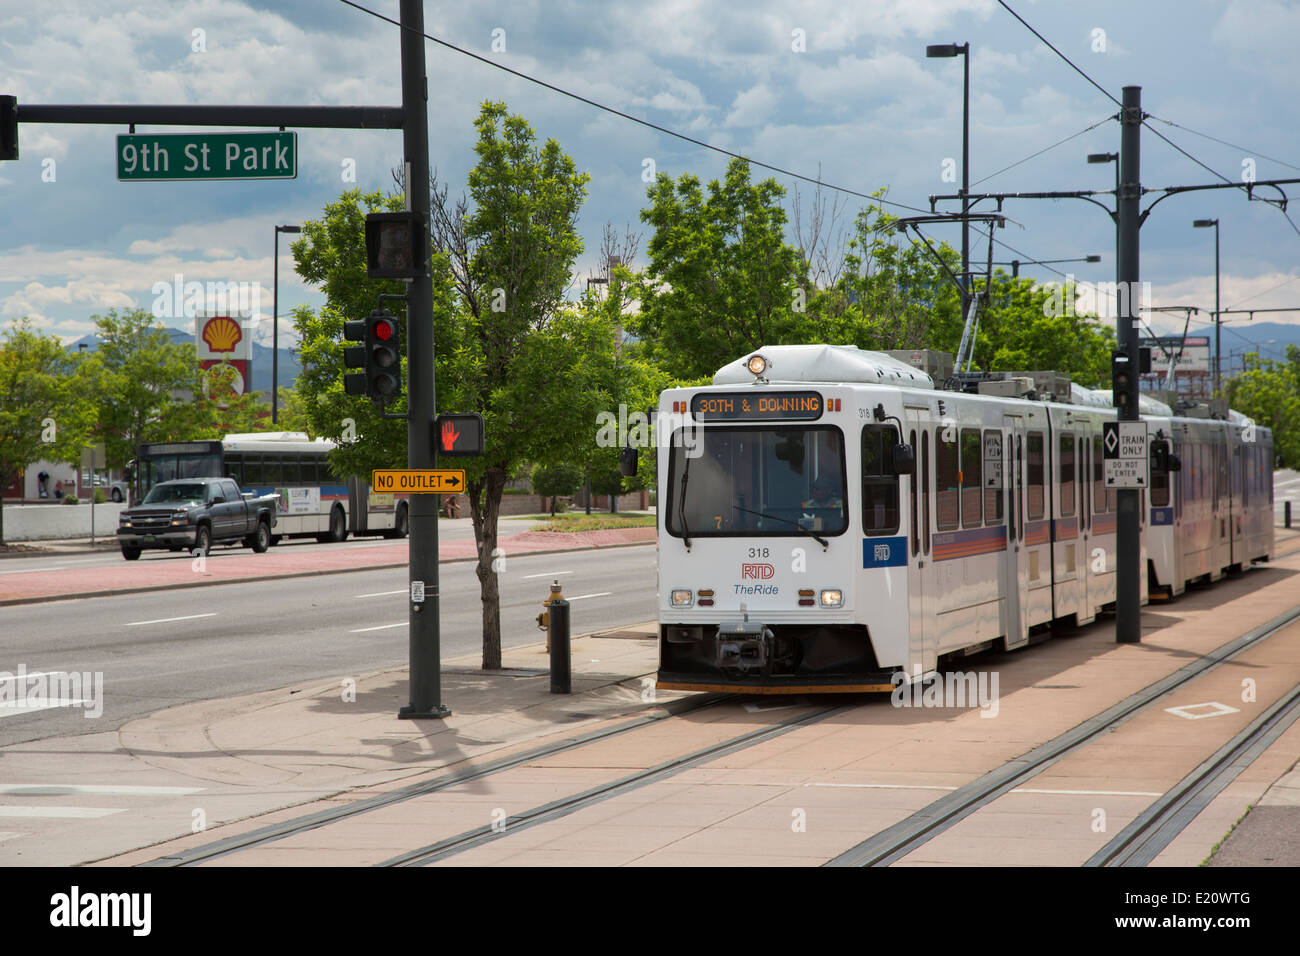 Denver, Colorado - Rapid transit trains at a station near downtown Denver. - Stock Image